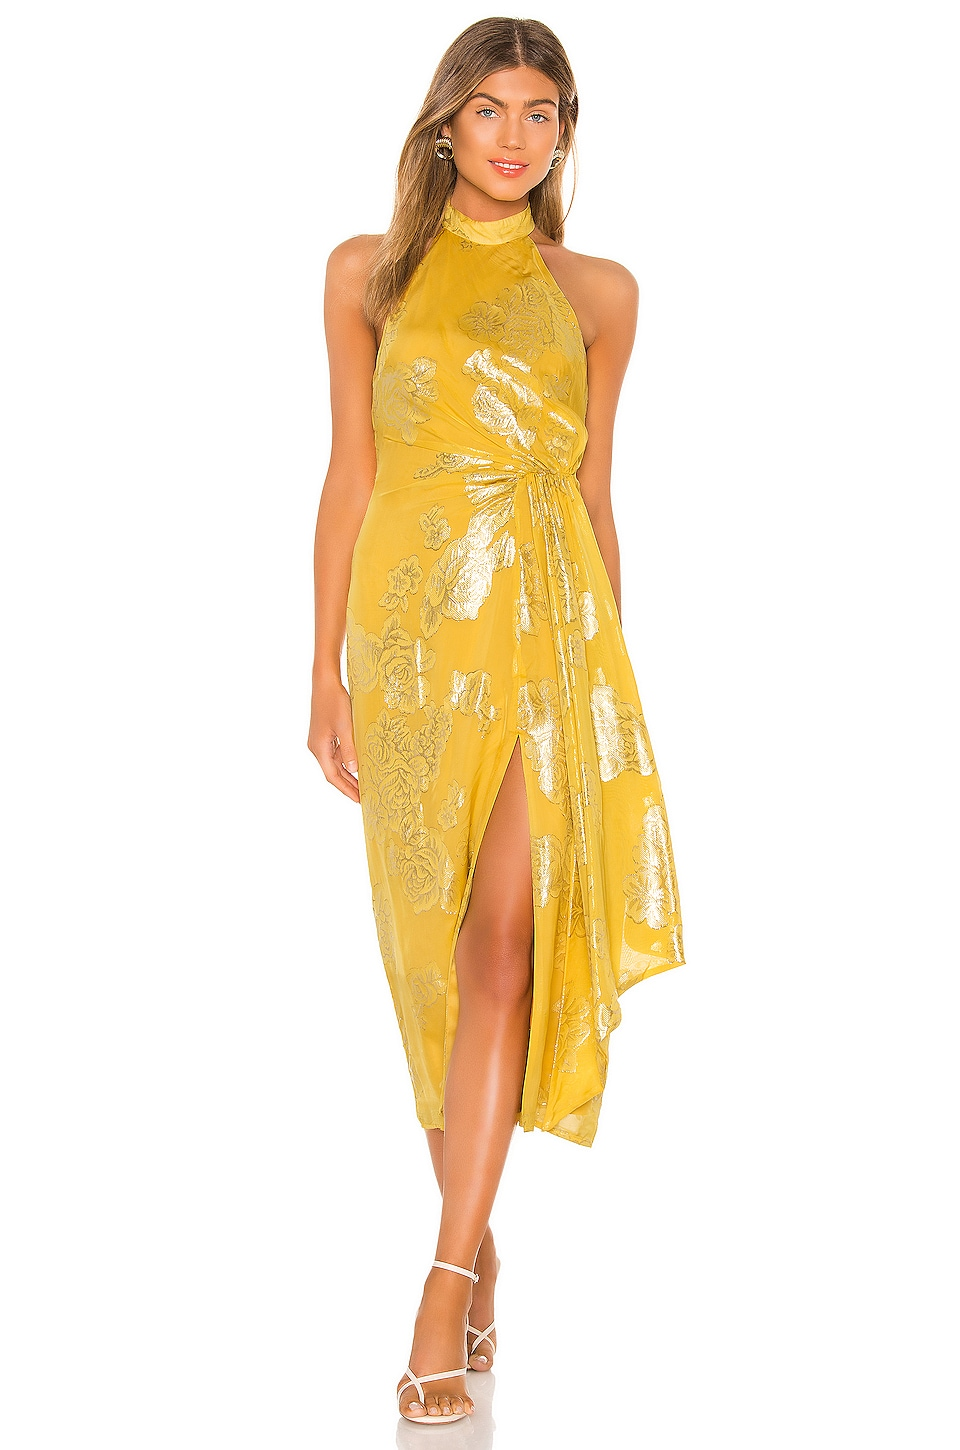 House of Harlow 1960 x REVOLVE Monika Midi Dress in Mustard Gold